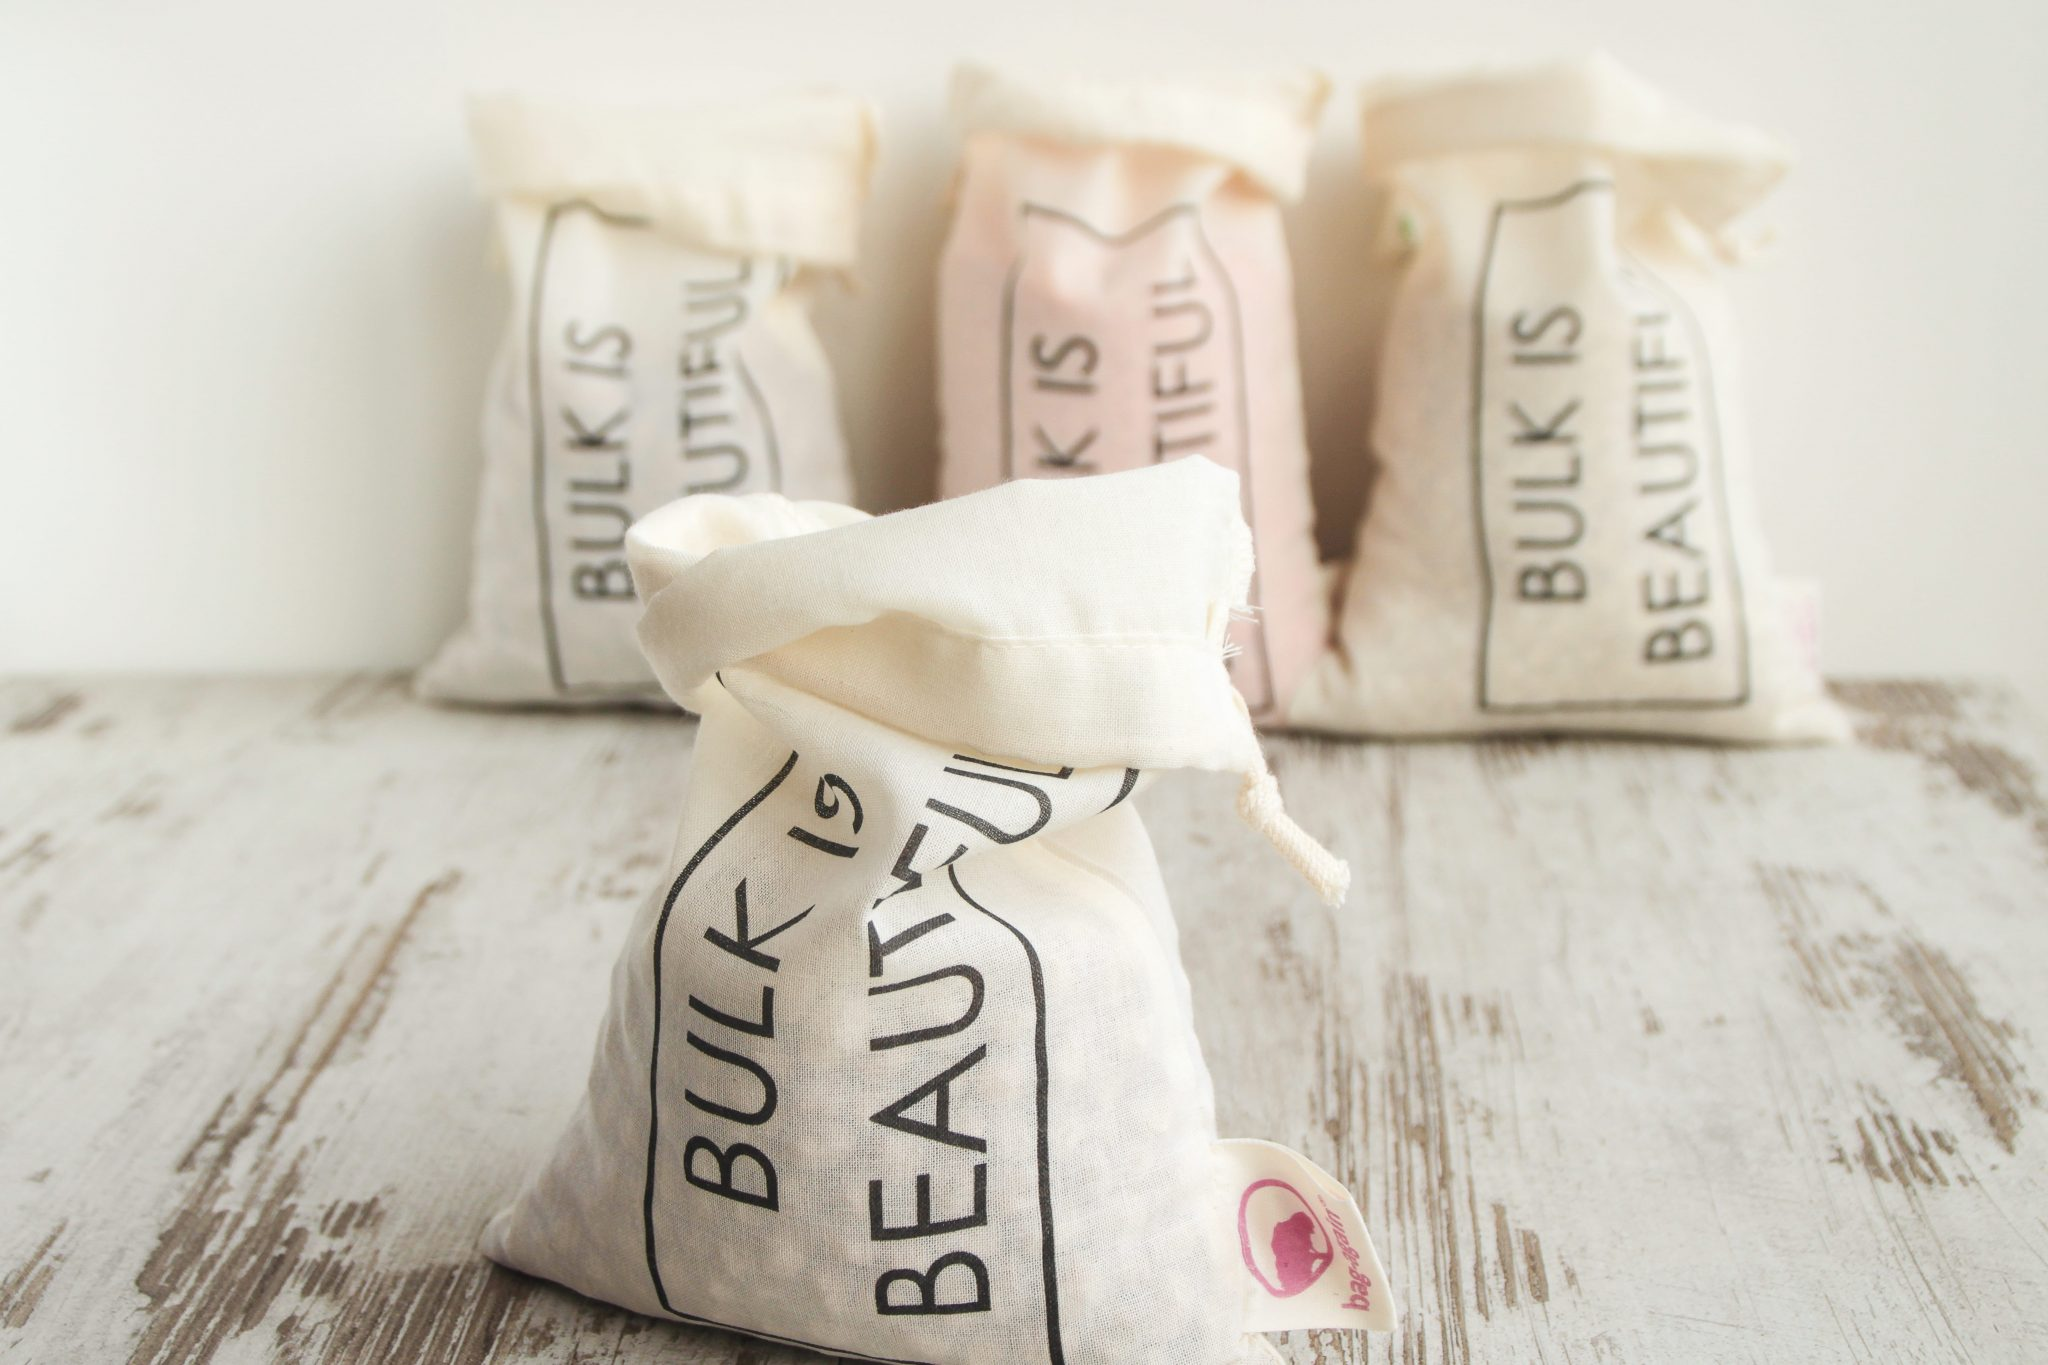 bulkzakje, bulkbag, bag-again, the zero waste shop, organic cotton, biologisch katoen, GOTS, zero waste